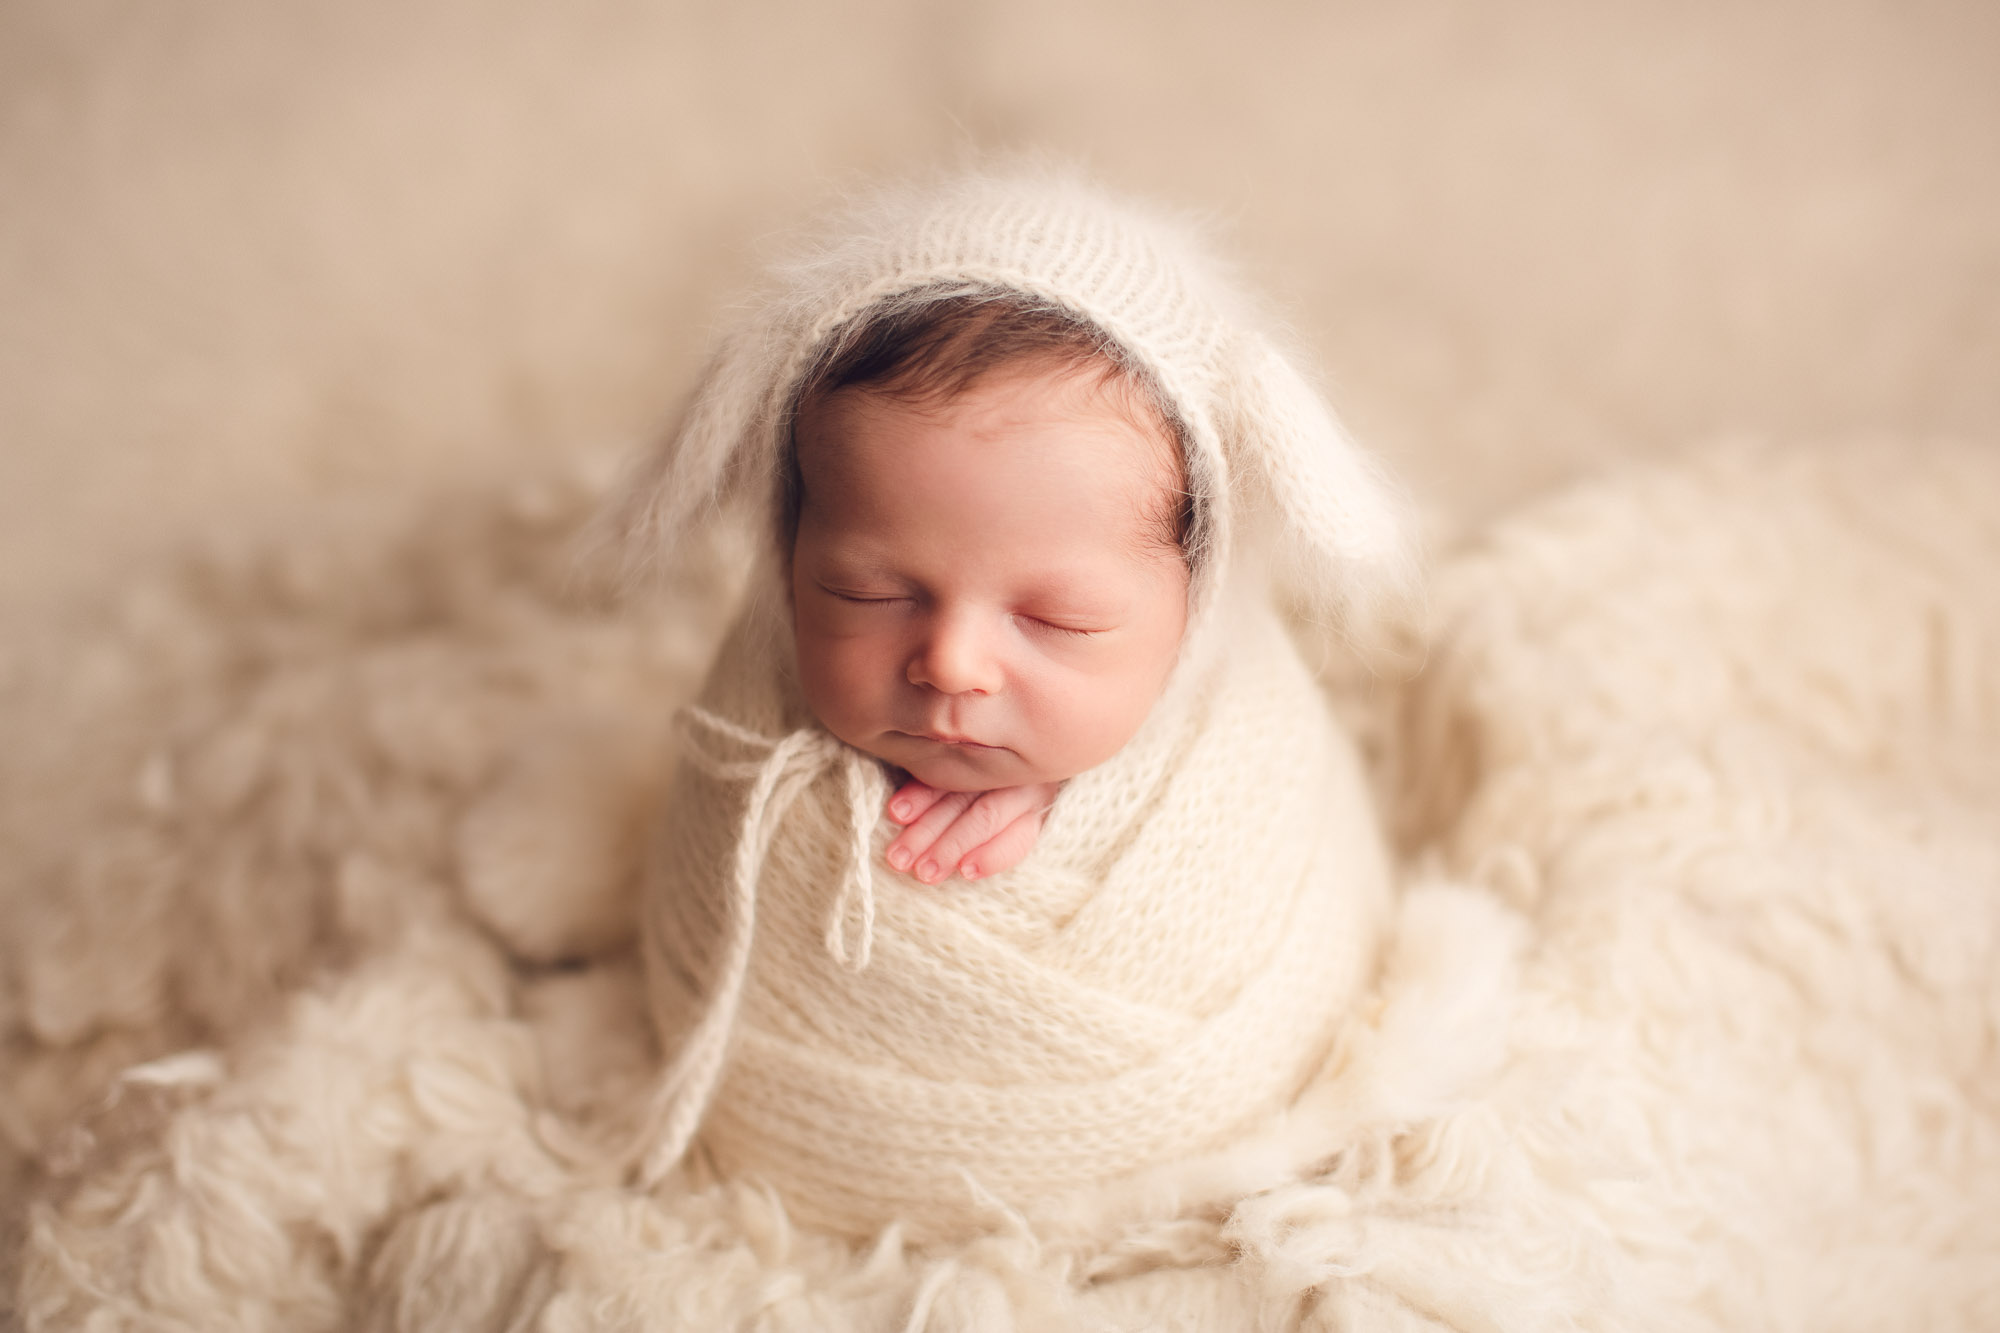 newborn photography - cute white setup